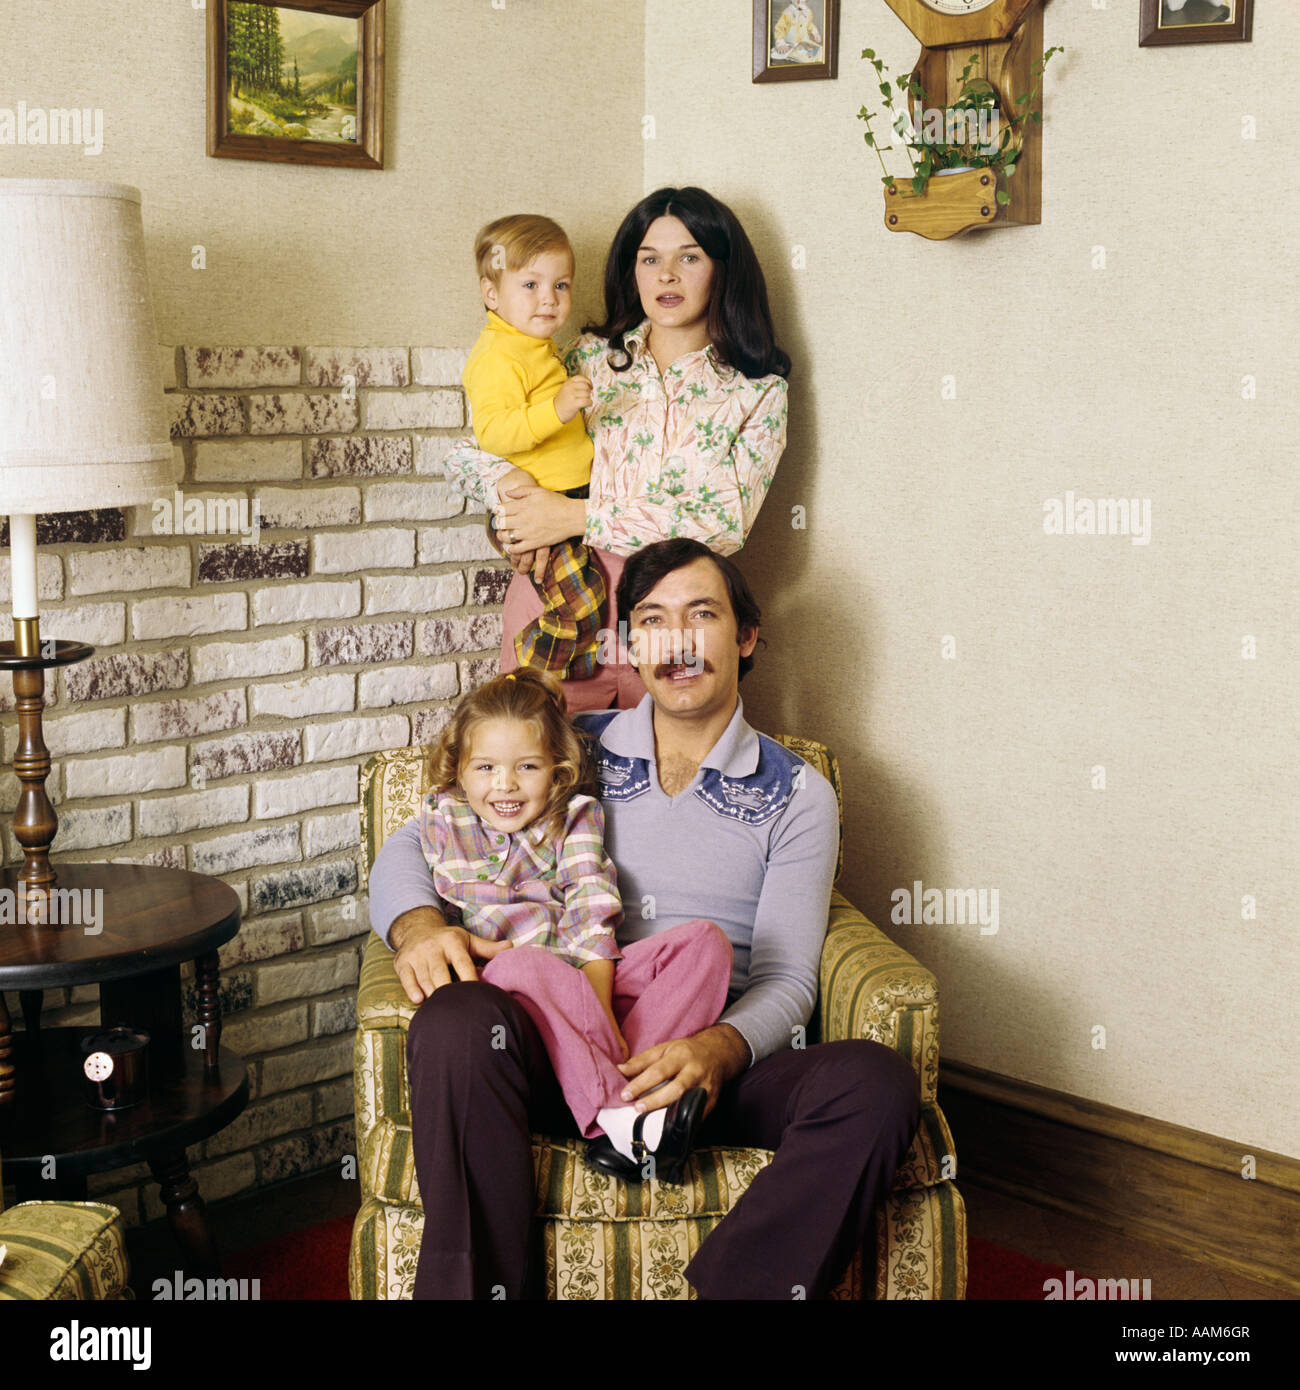 1970s FAMILY PORTRAIT LIVING ROOM MAN FATHER SITTING CHAIR WOMAN MOTHER STANDING TWO KIDS FASHION CLOTHES - Stock Image